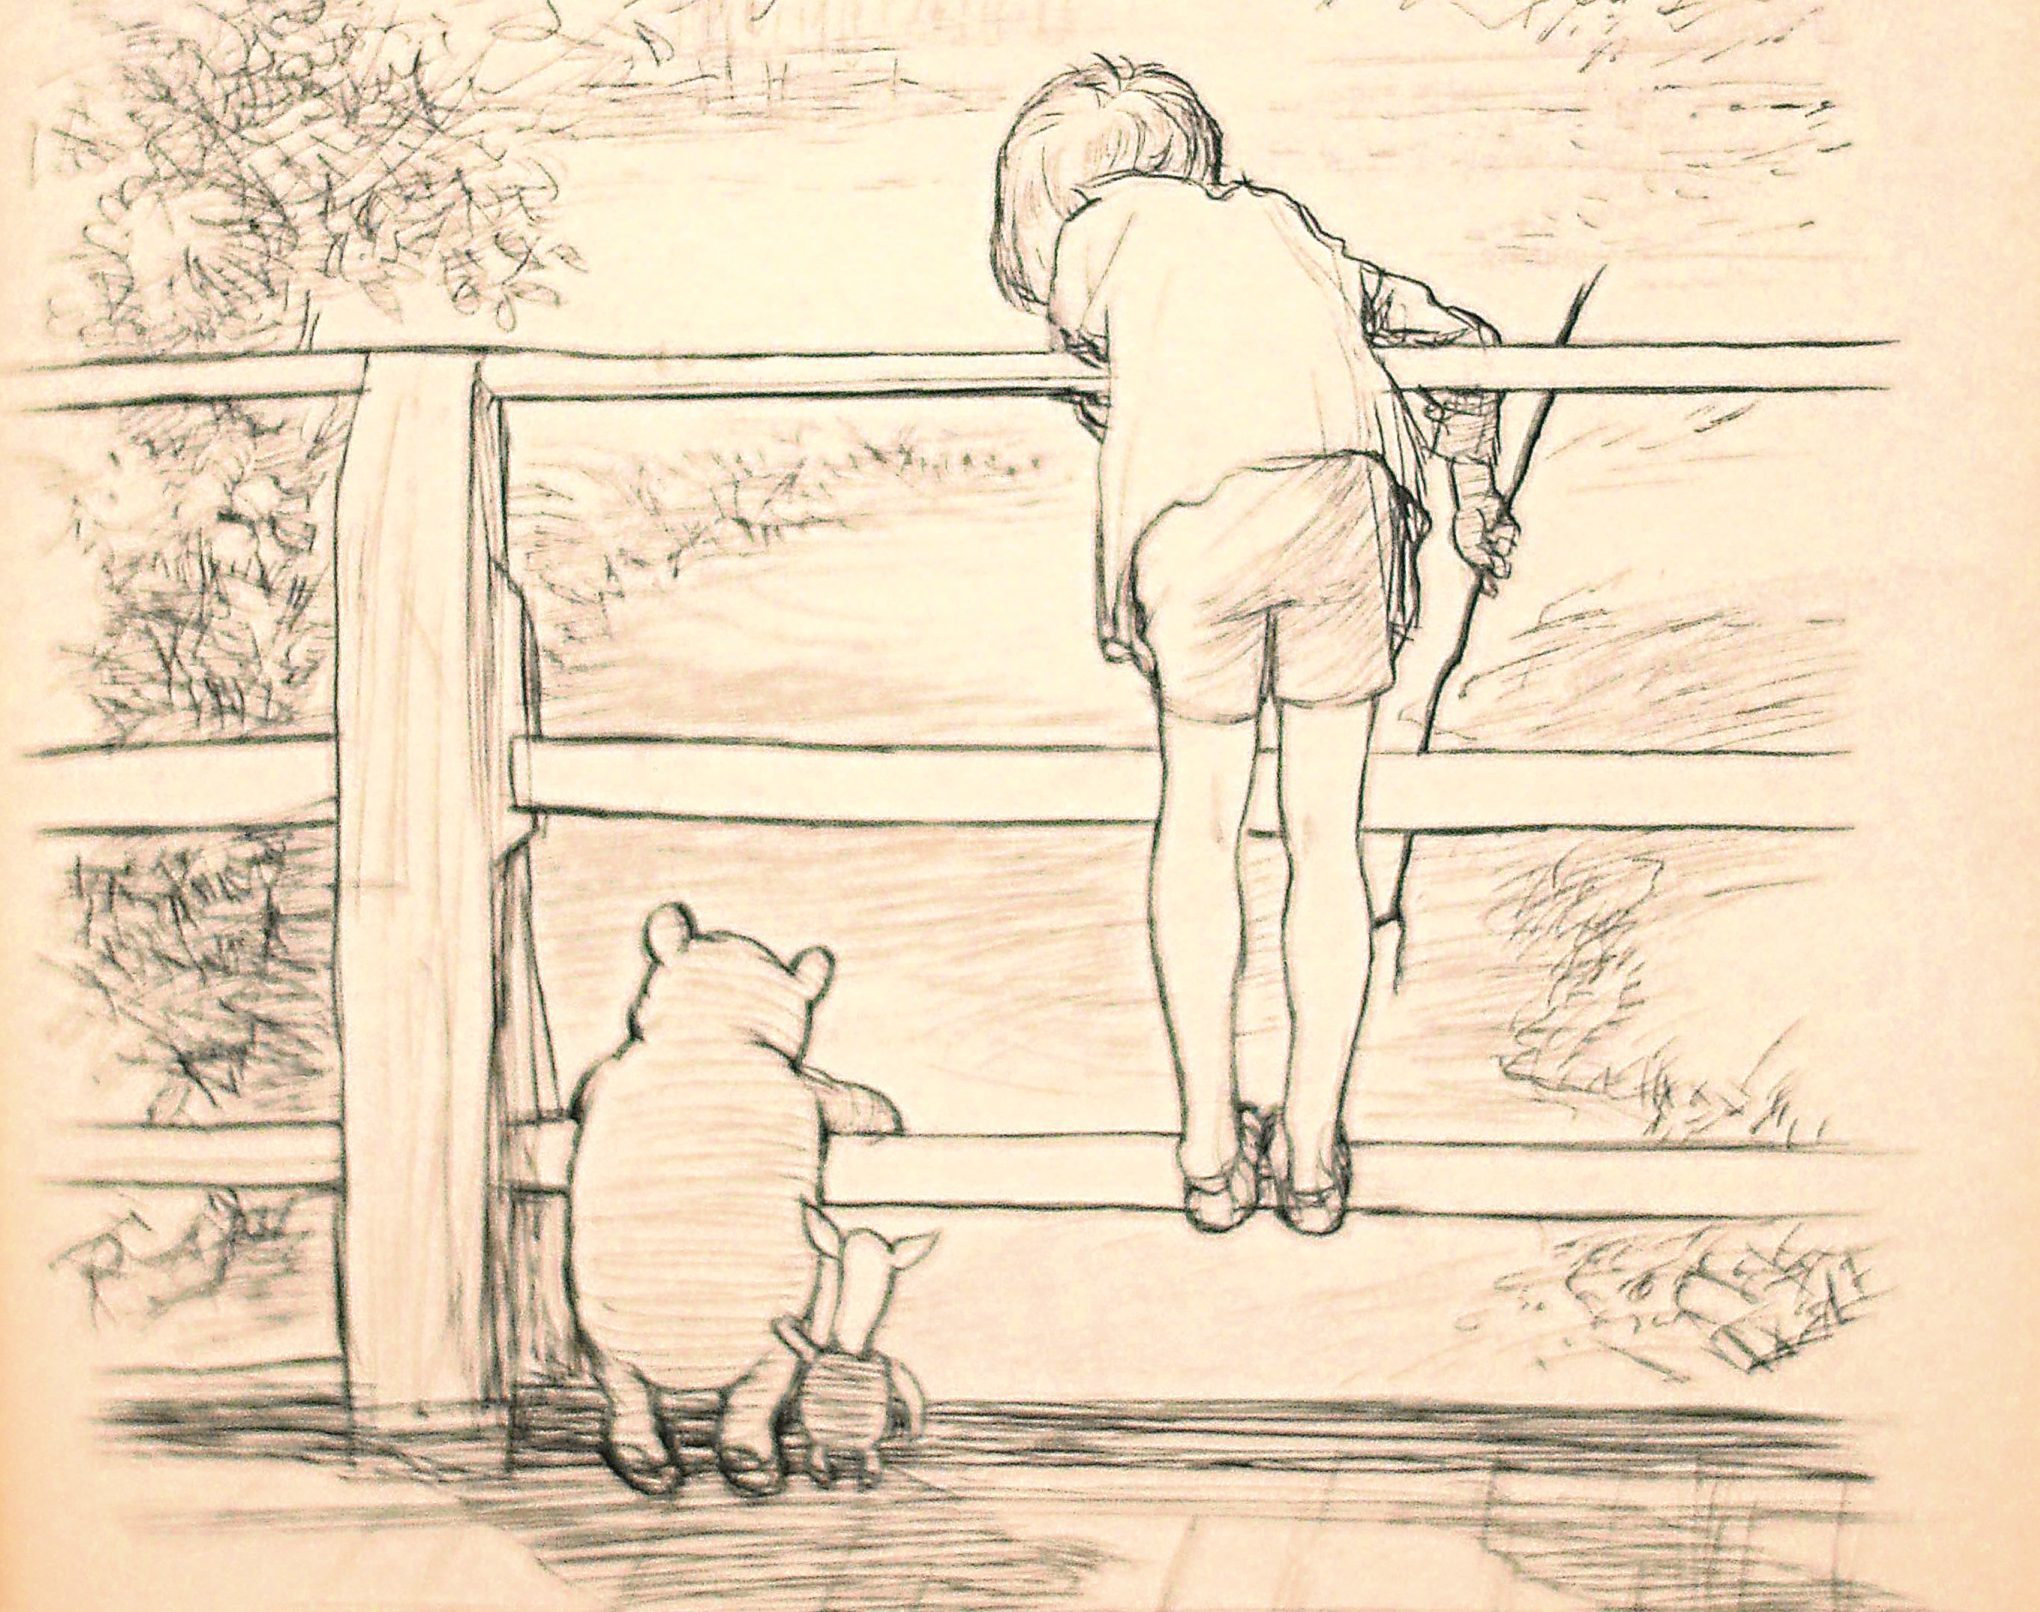 The drawing by E.H Shepard of Winnie the Pooh